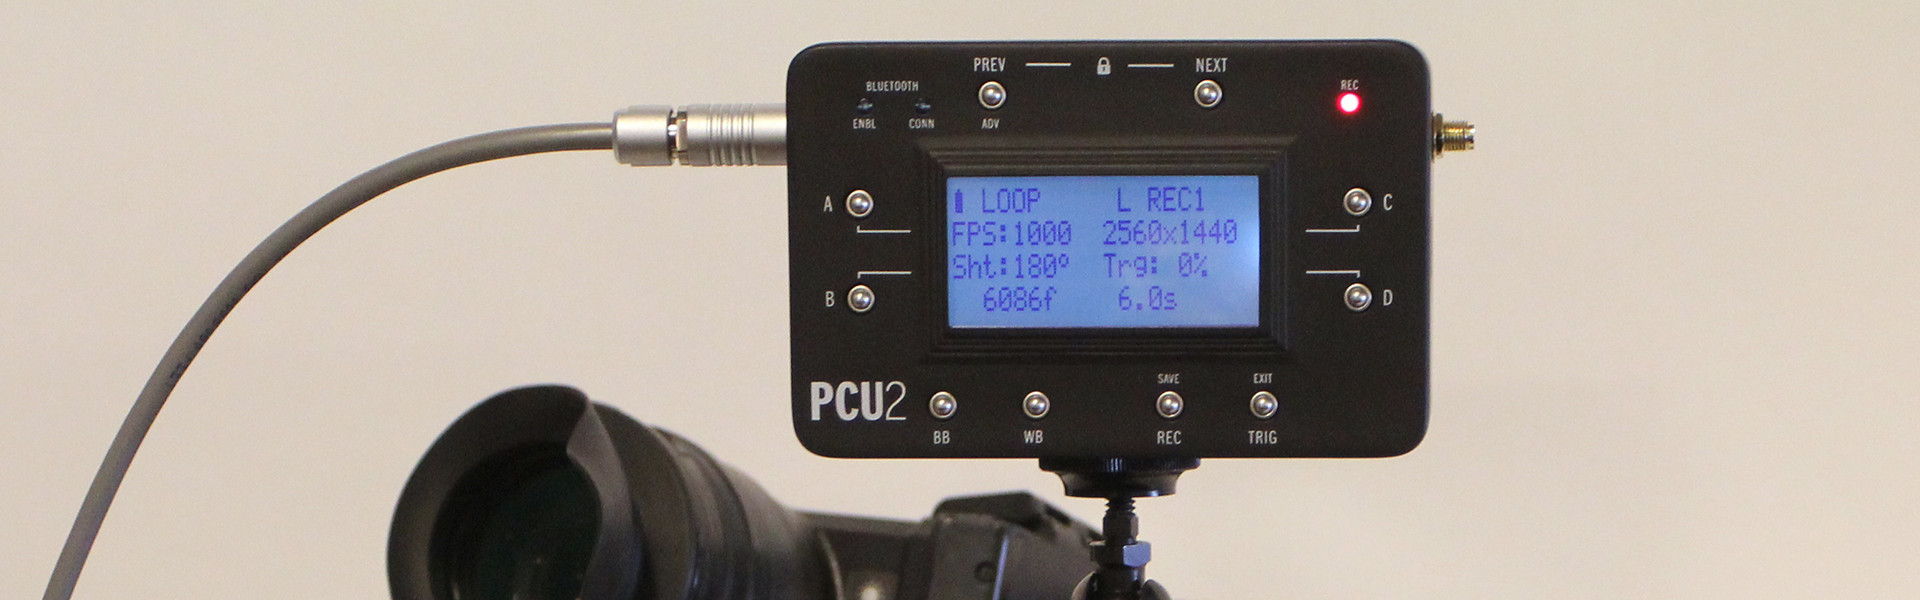 Header image for article PCU2 / PCU2+ Manual and Firmware